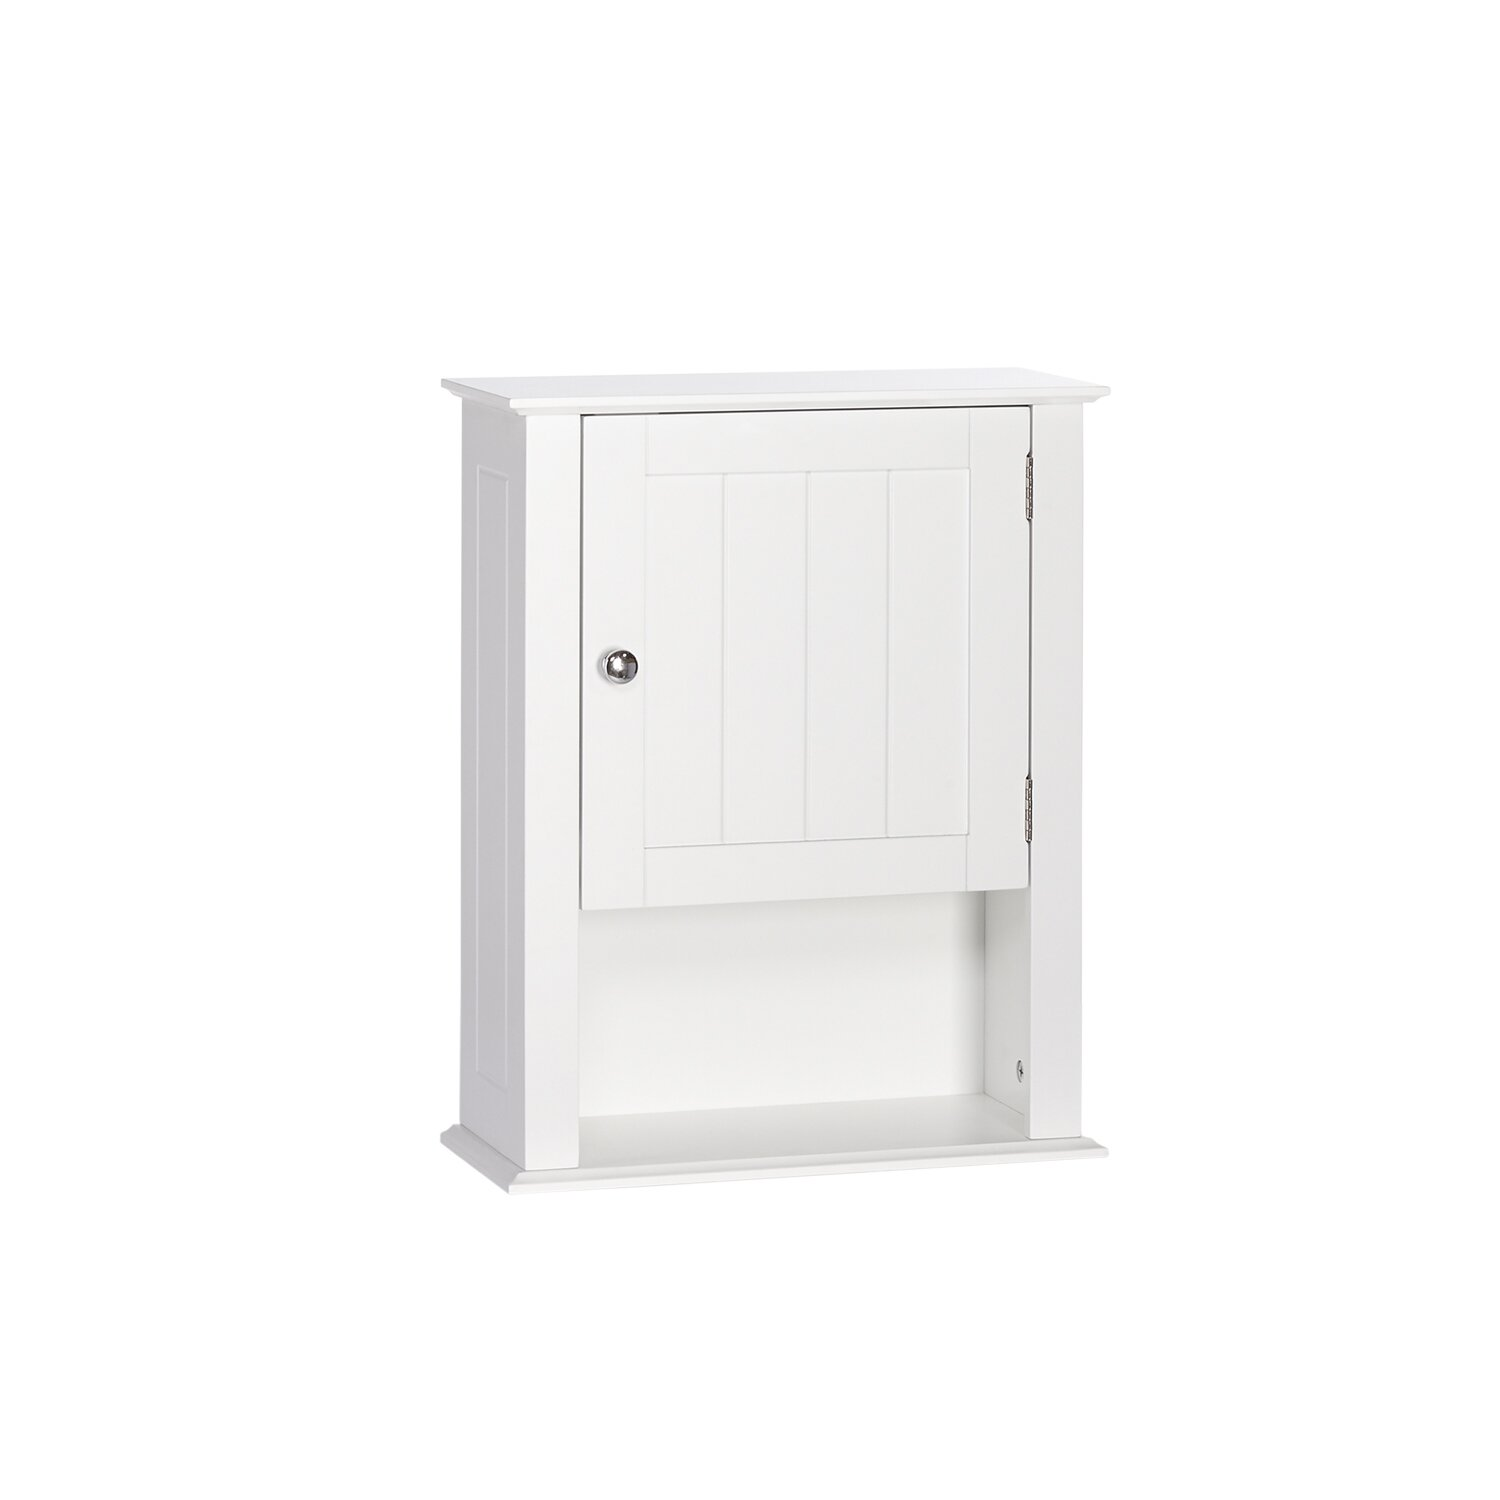 white bathroom wall cabinets | My Web Value